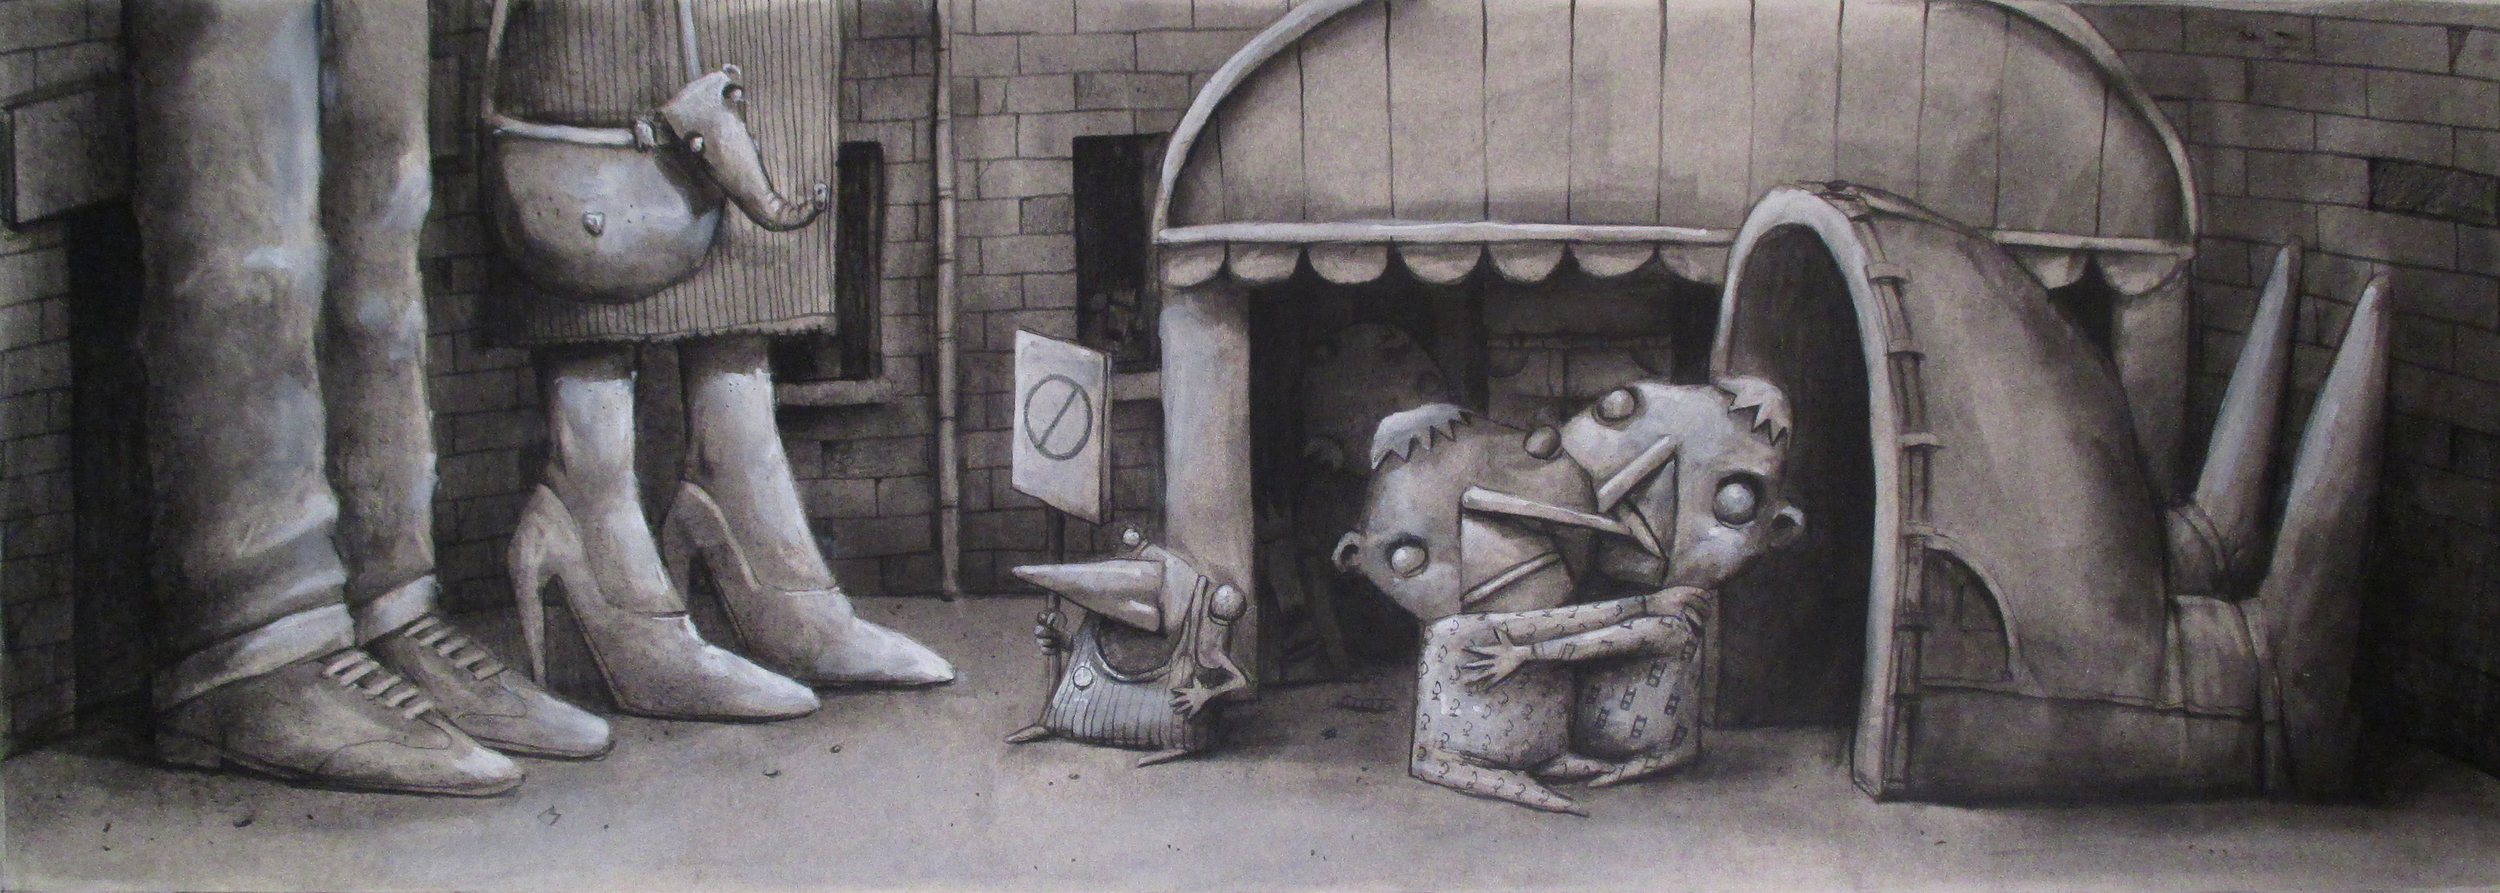 "'Adam & co', graphite on paper paper, 10"" x 27"""